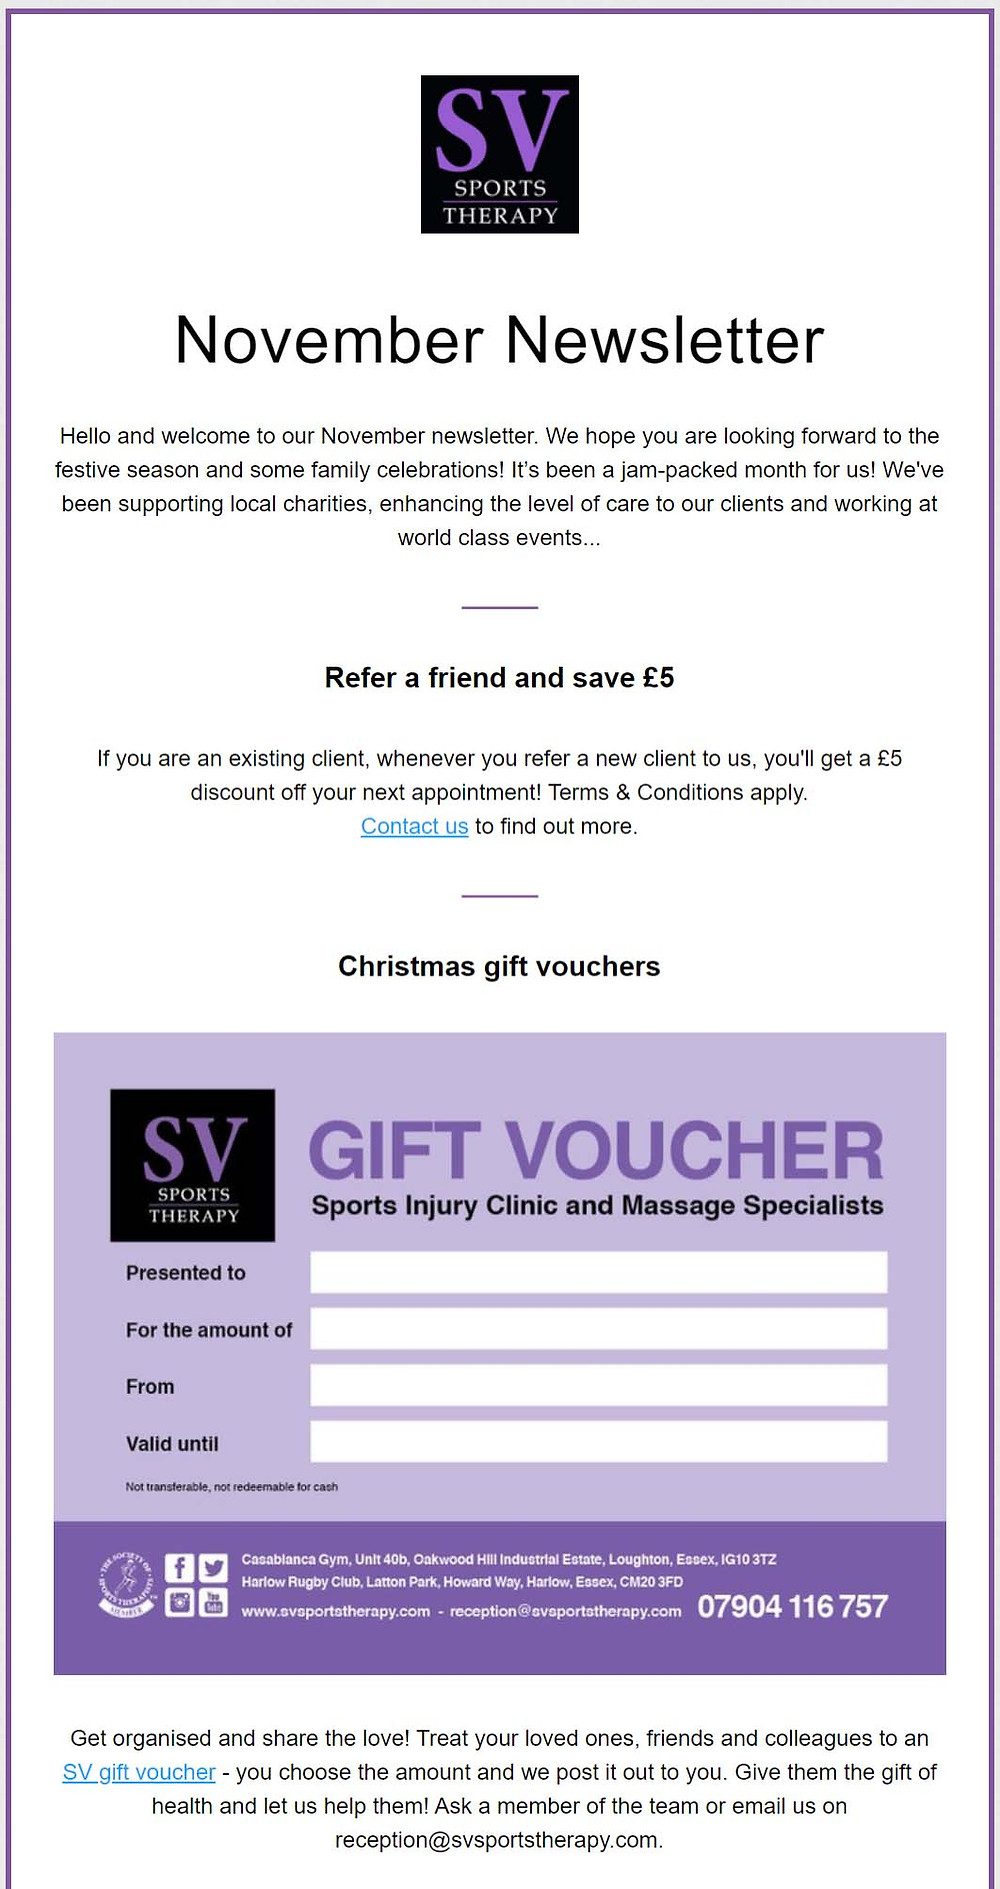 SV Sports Therapy Newsletter